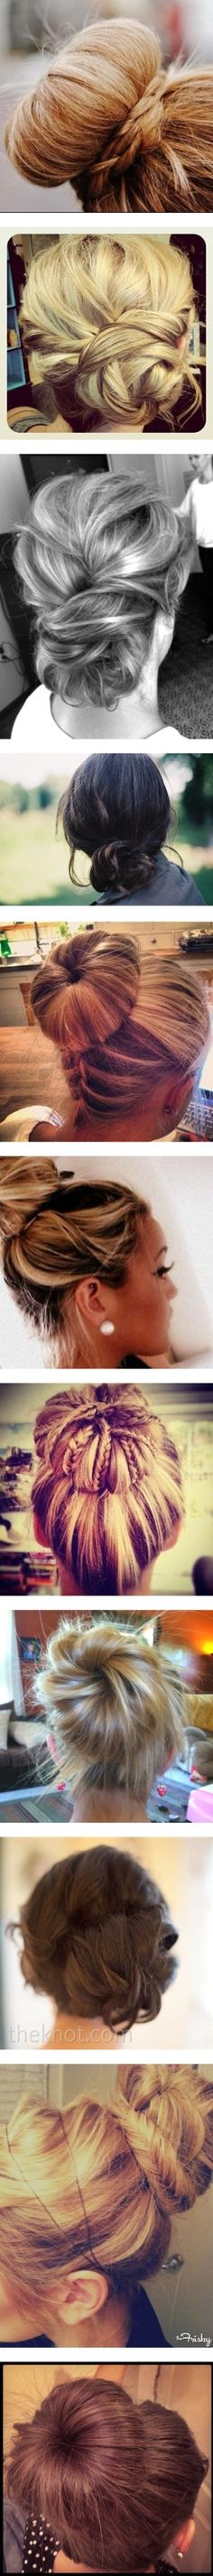 We can't resist buns as our go-to hairstyle for all occasions - formal or not! #hairstyles #homecoming2013 Bun Hairstyles, Pretty Hairstyles, Hairstyle Ideas, Medium Hairstyles, Short Haircuts, Wedding Hairstyle, Bun Styles, Long Hair Styles, Great Hair